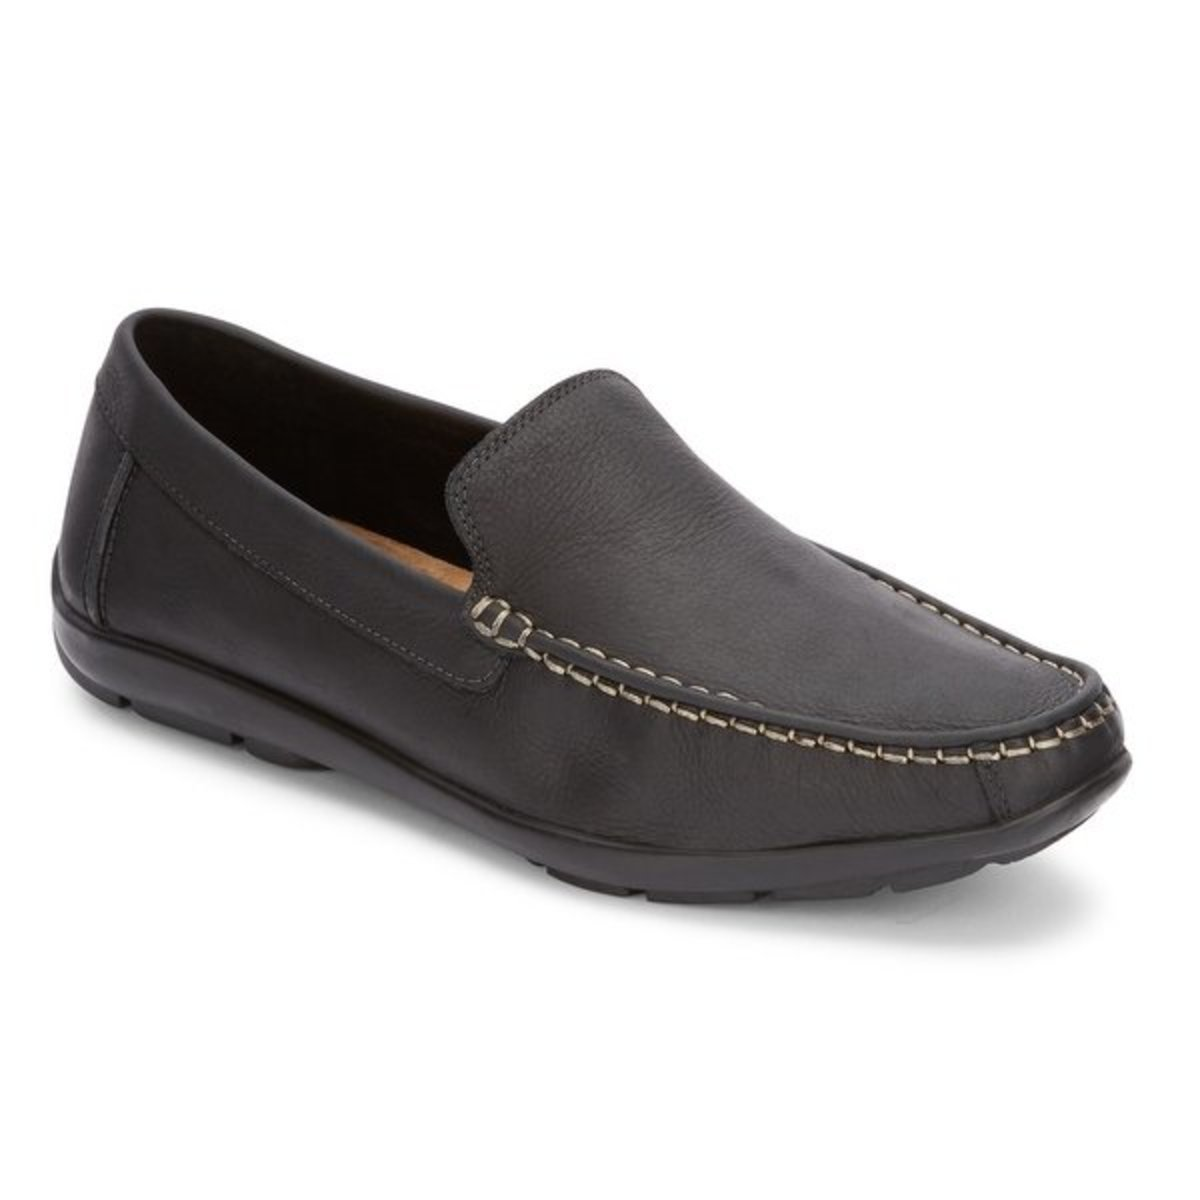 G.H. Bass & Co. Men's Leather Driver Loafers Review